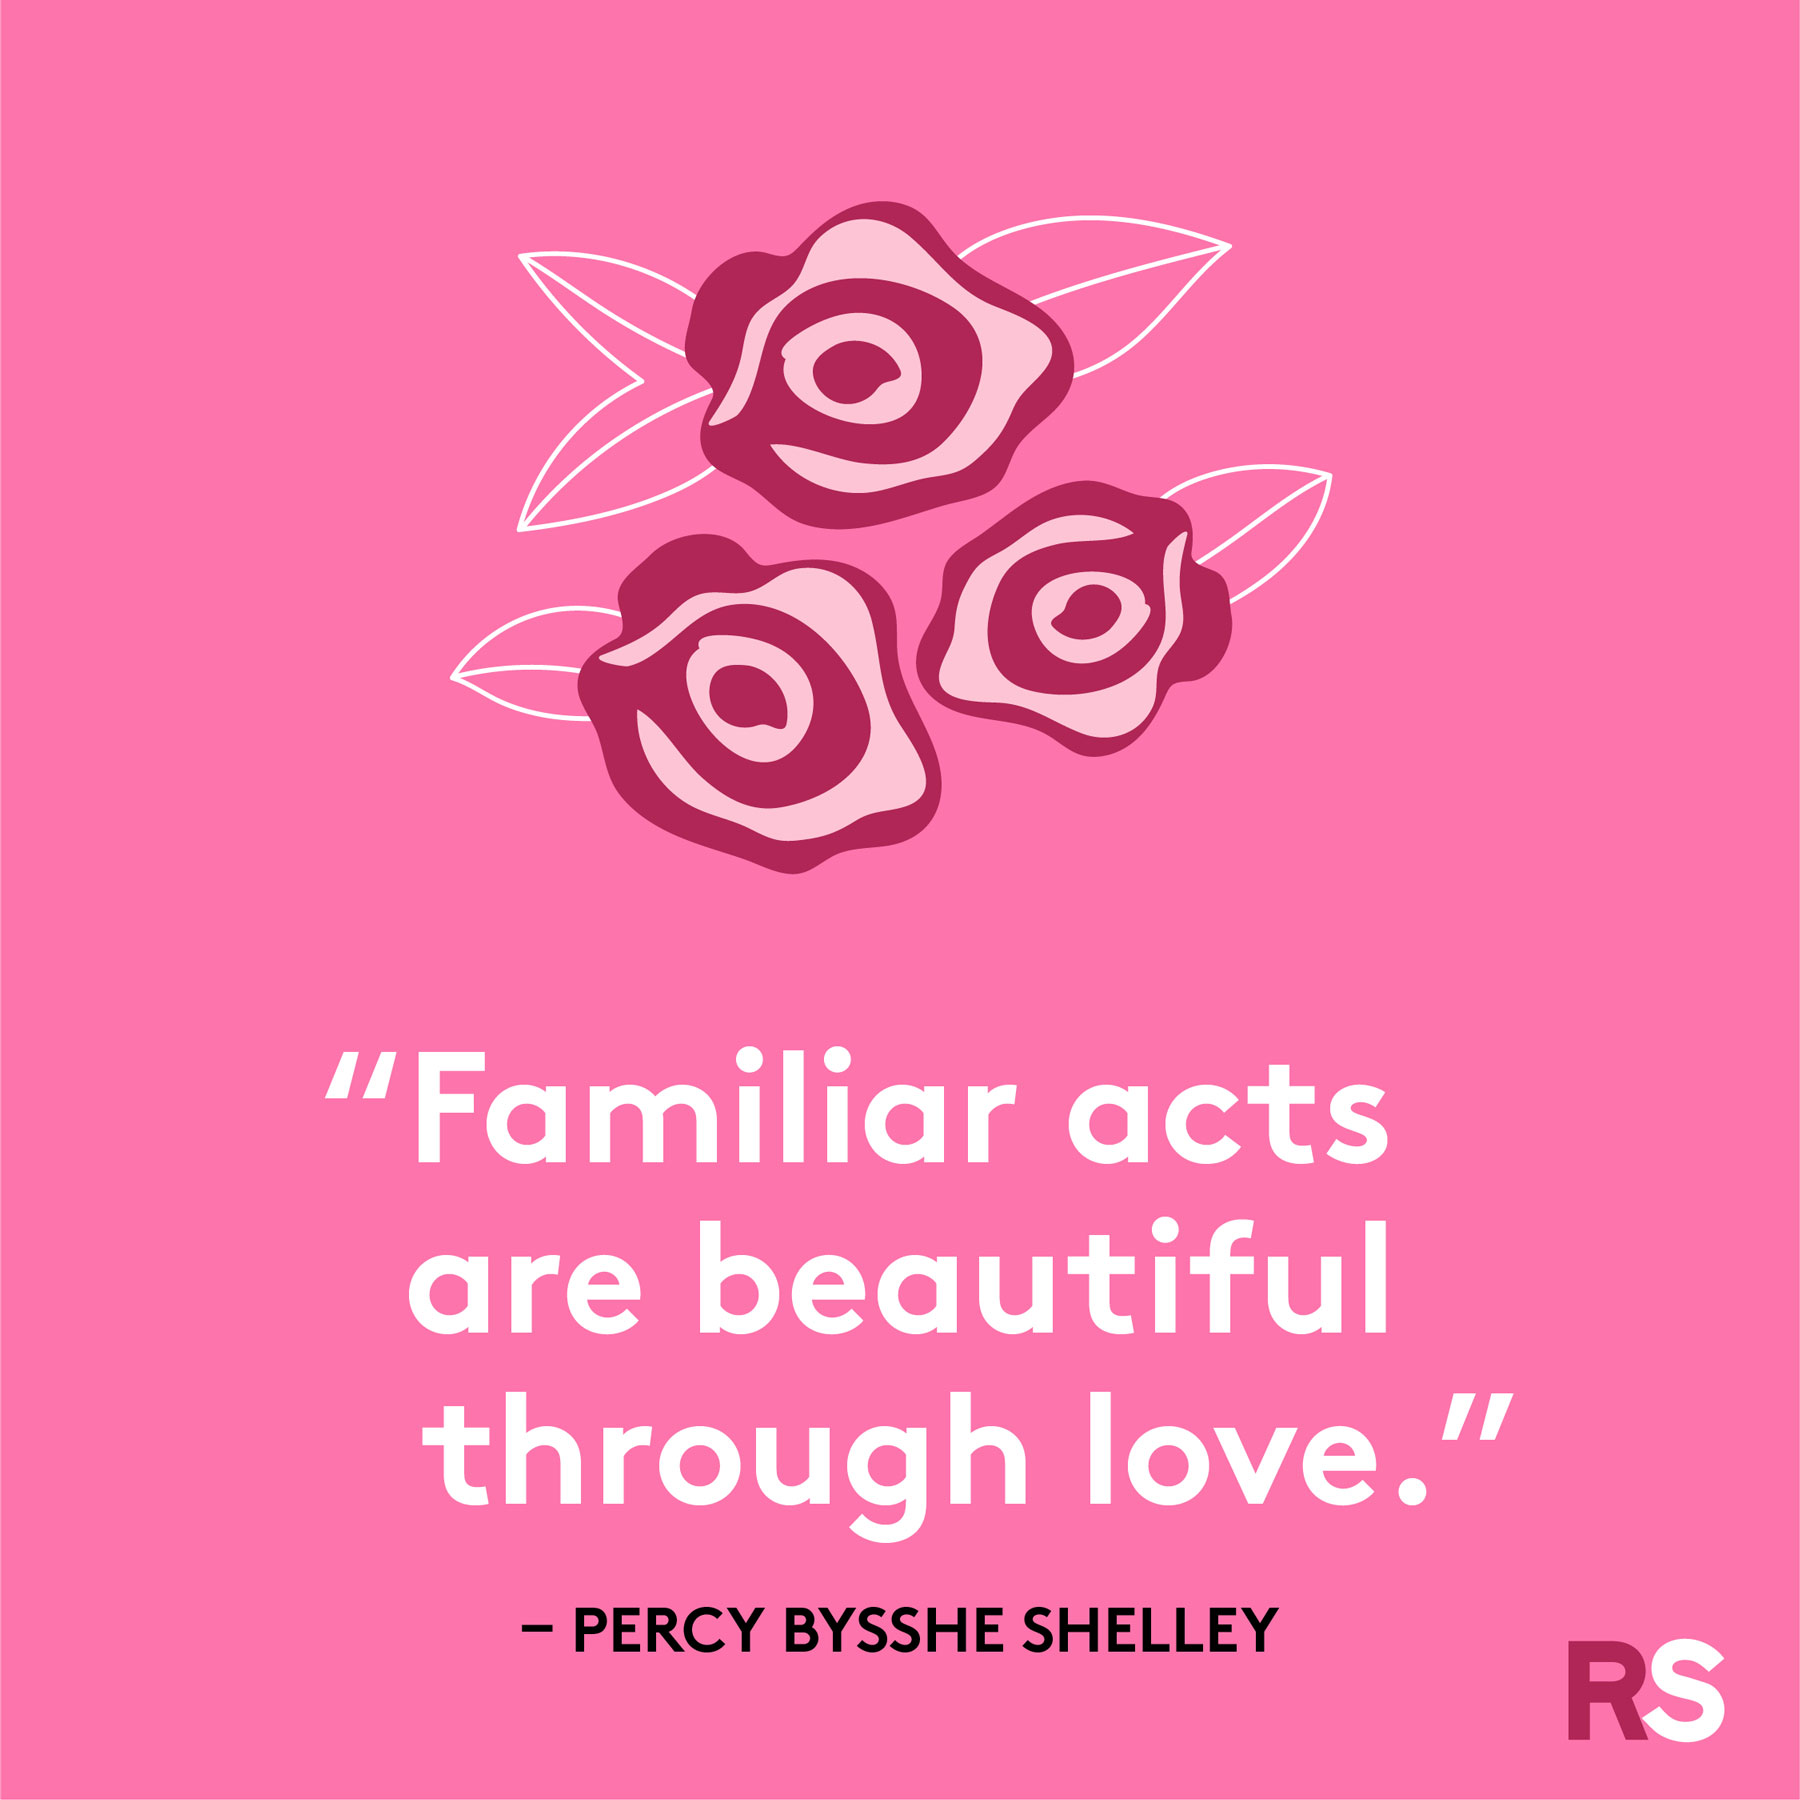 Love quotes, quotes about love - Percy Bysshe Shelley